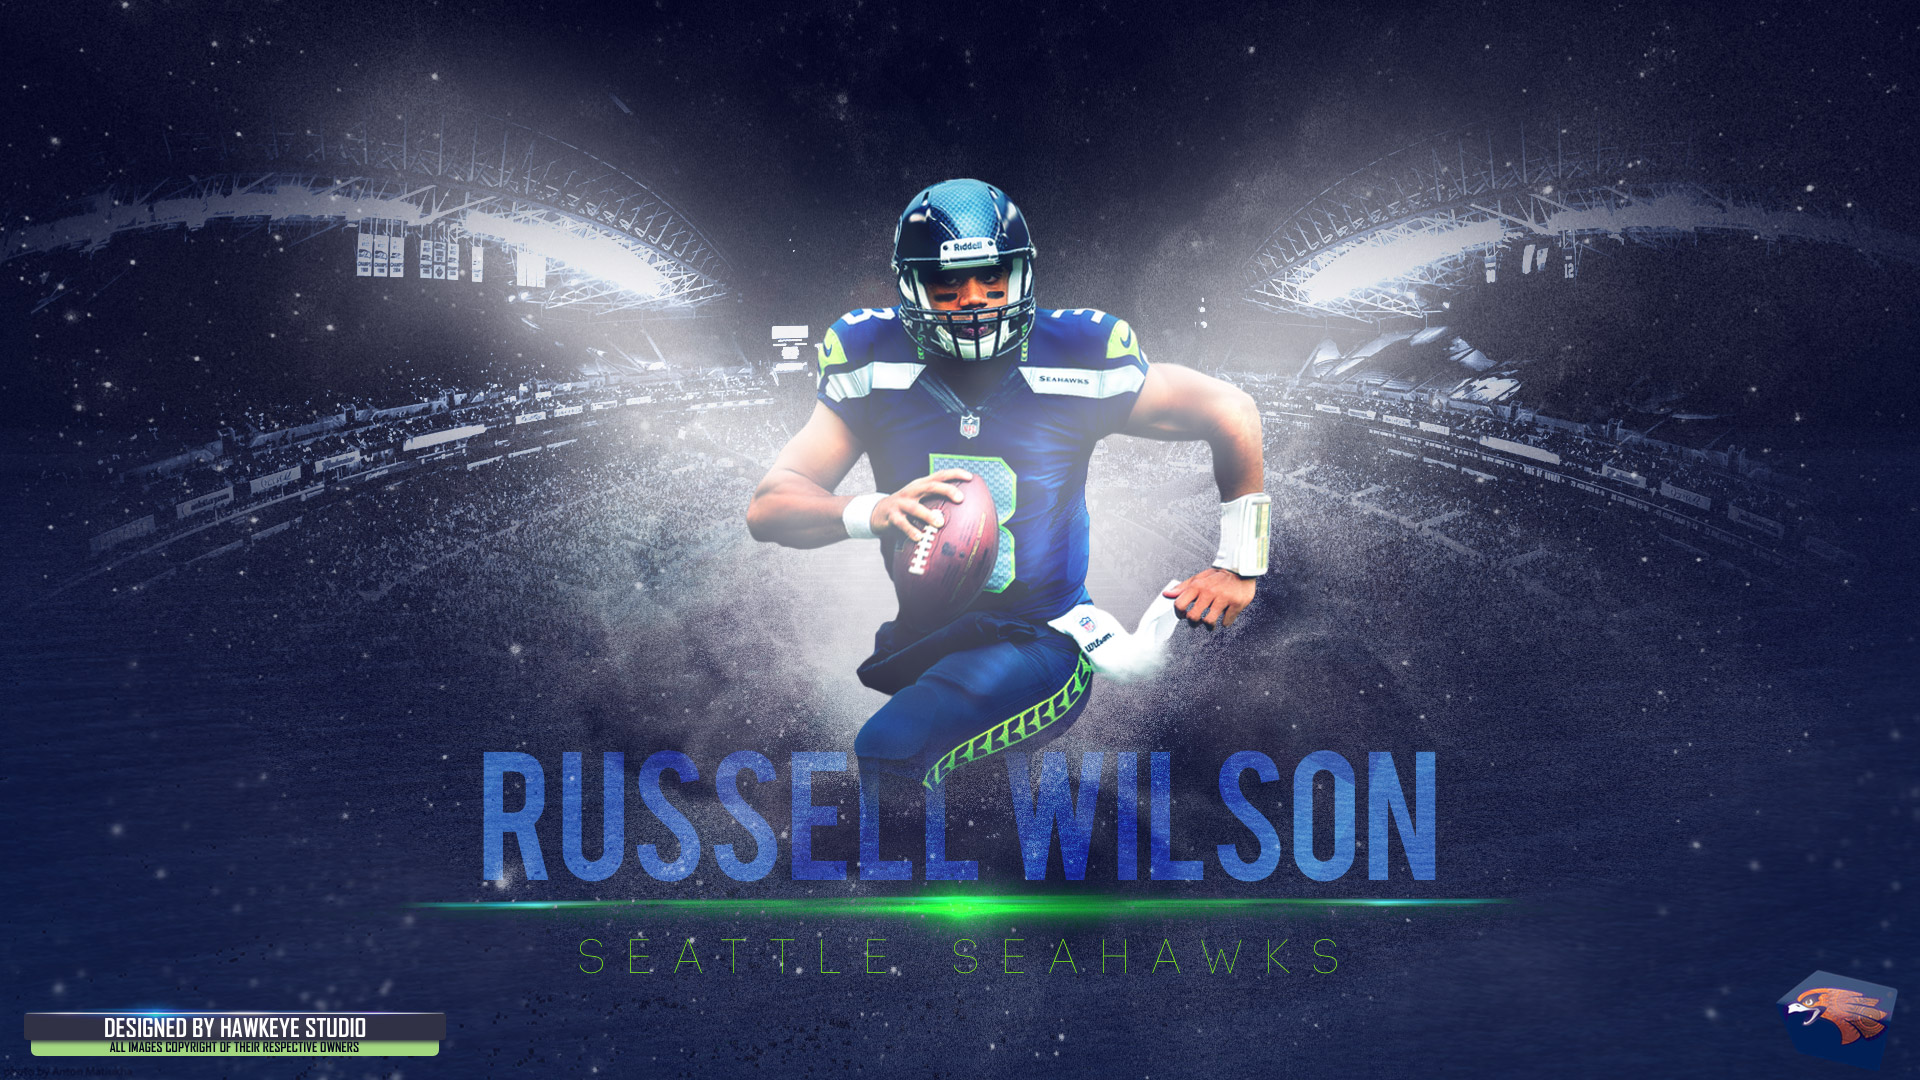 Seahawks Wallpaper Iphone X Russell Wilson Full Hd Wallpaper And Background Image